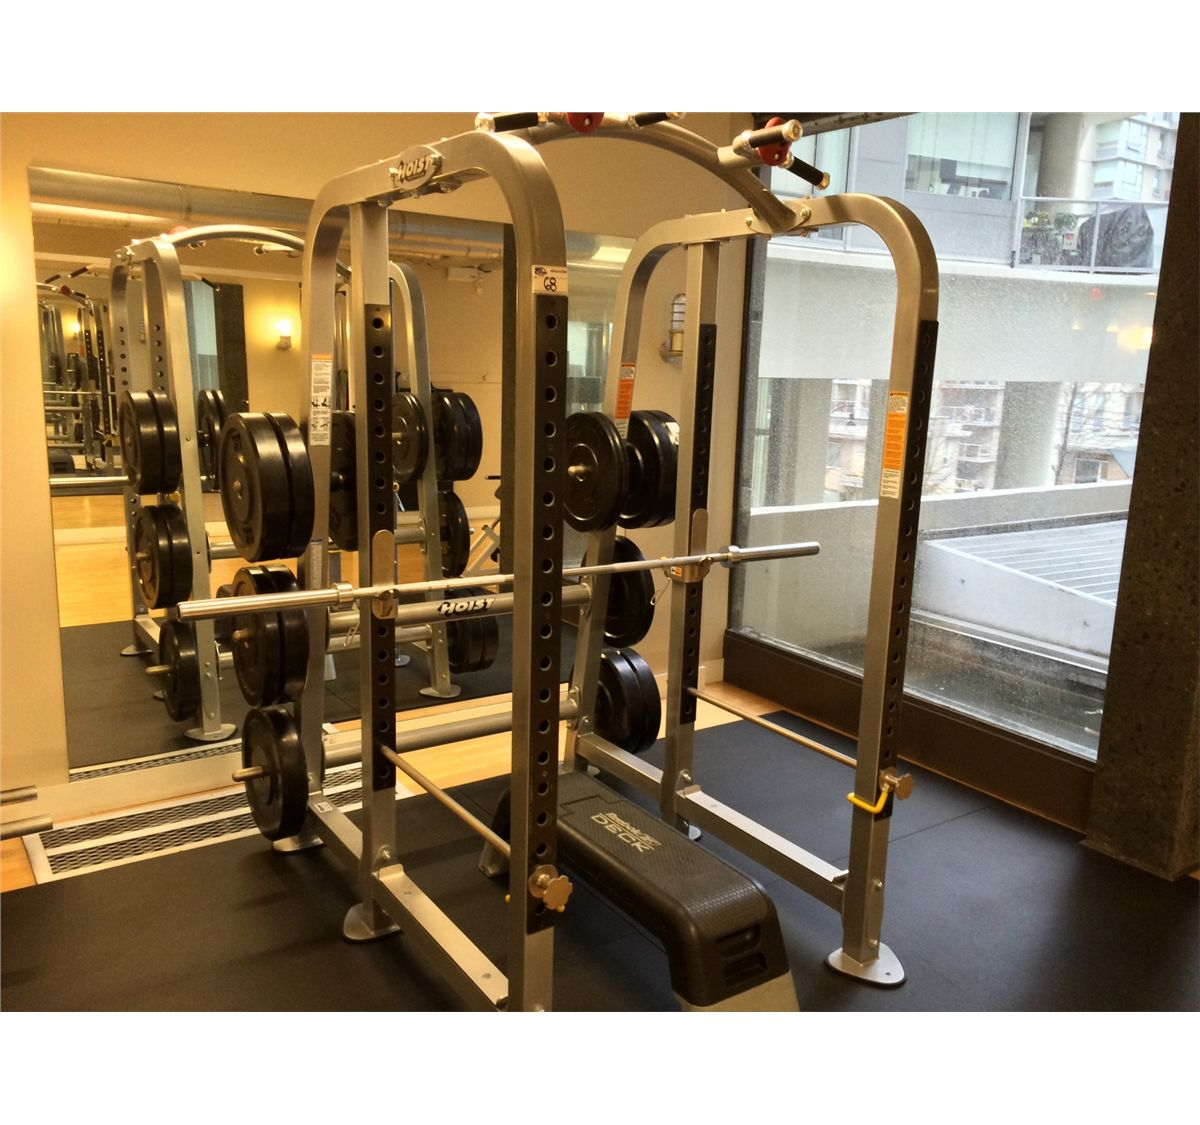 Hoist free weight bench press squat station with reebok for Squat station